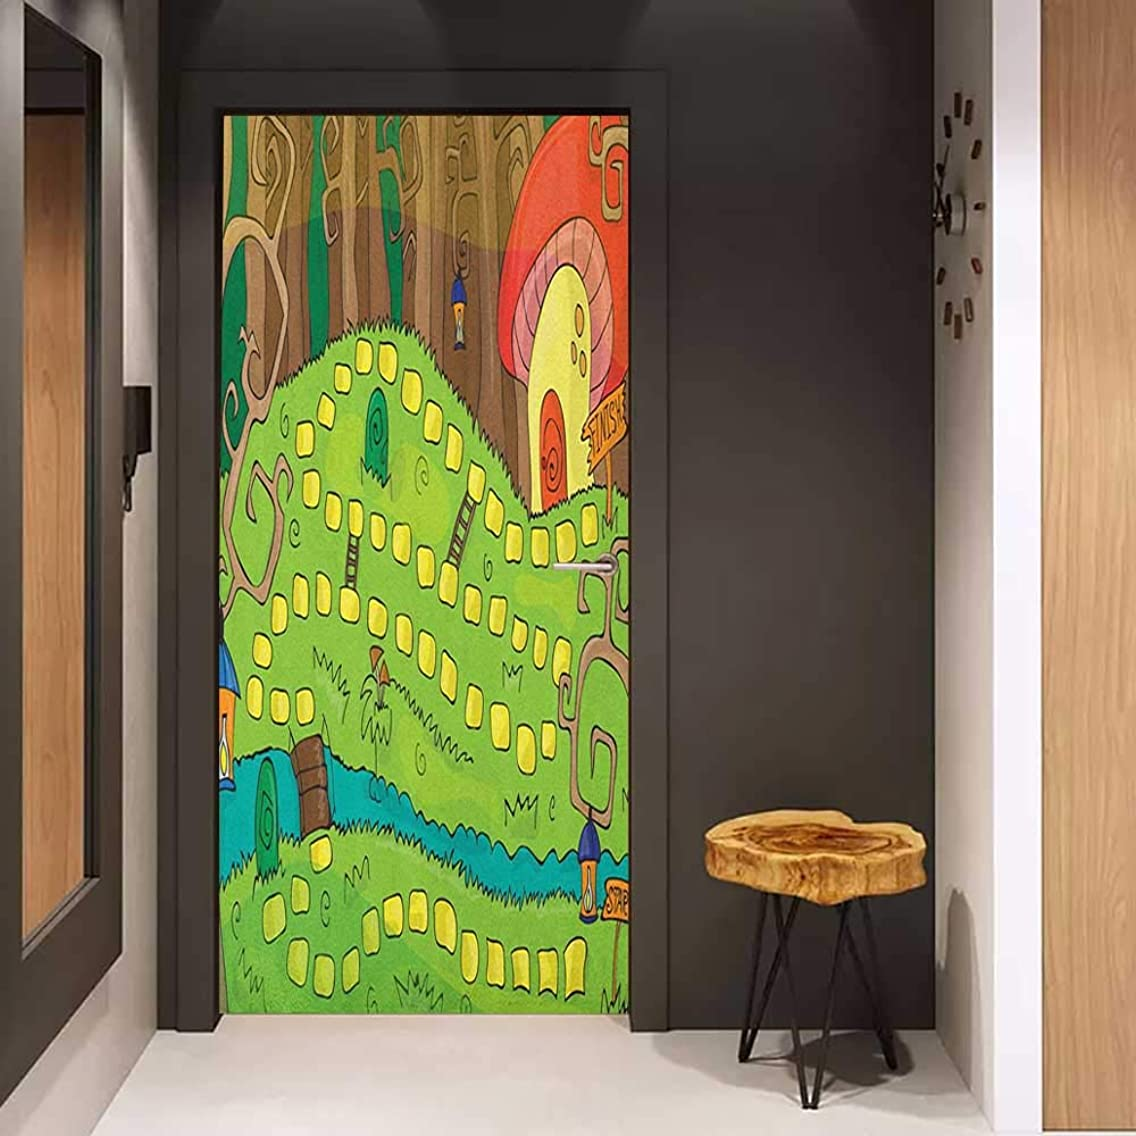 Onefzc Door Wallpaper Murals Kids Activity Board Game Style Design of Pathway to The Mushroom House in a Magical Forest WallStickers W32 x H80 Multicolor